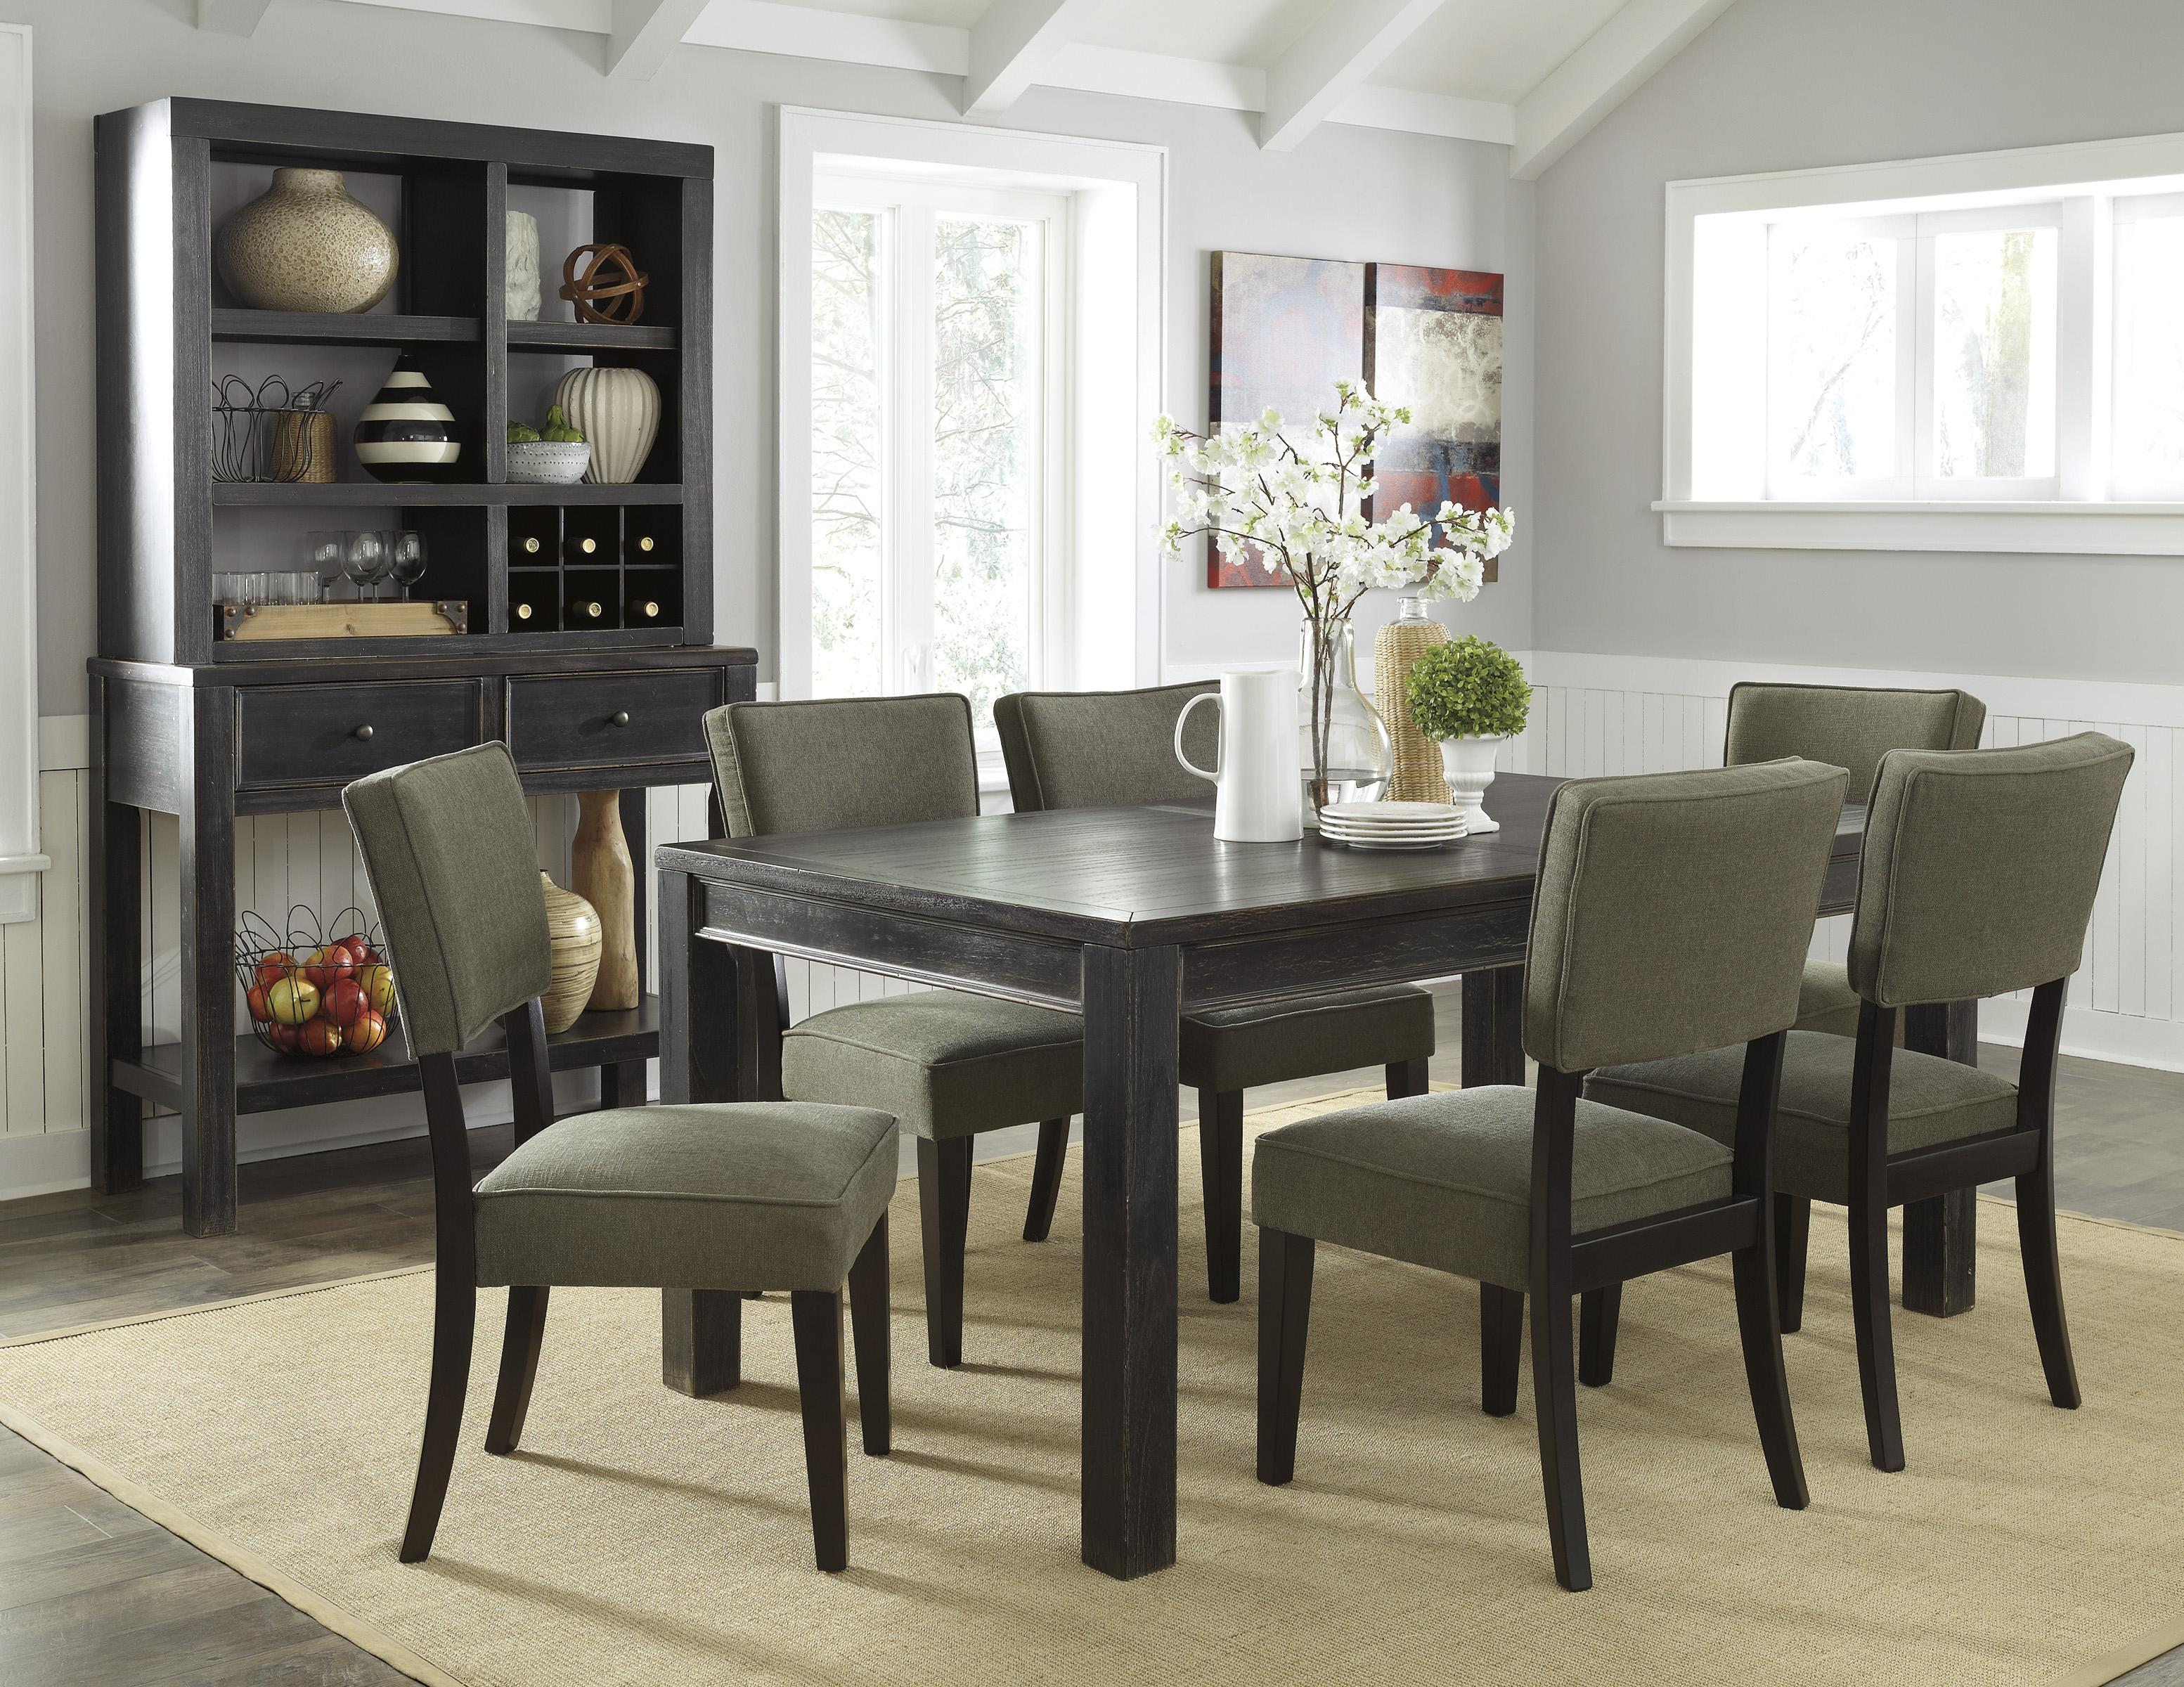 Signature Design by Ashley Gavelston Casual Dining Room Group - Item Number: D532 Dining Room Group 12